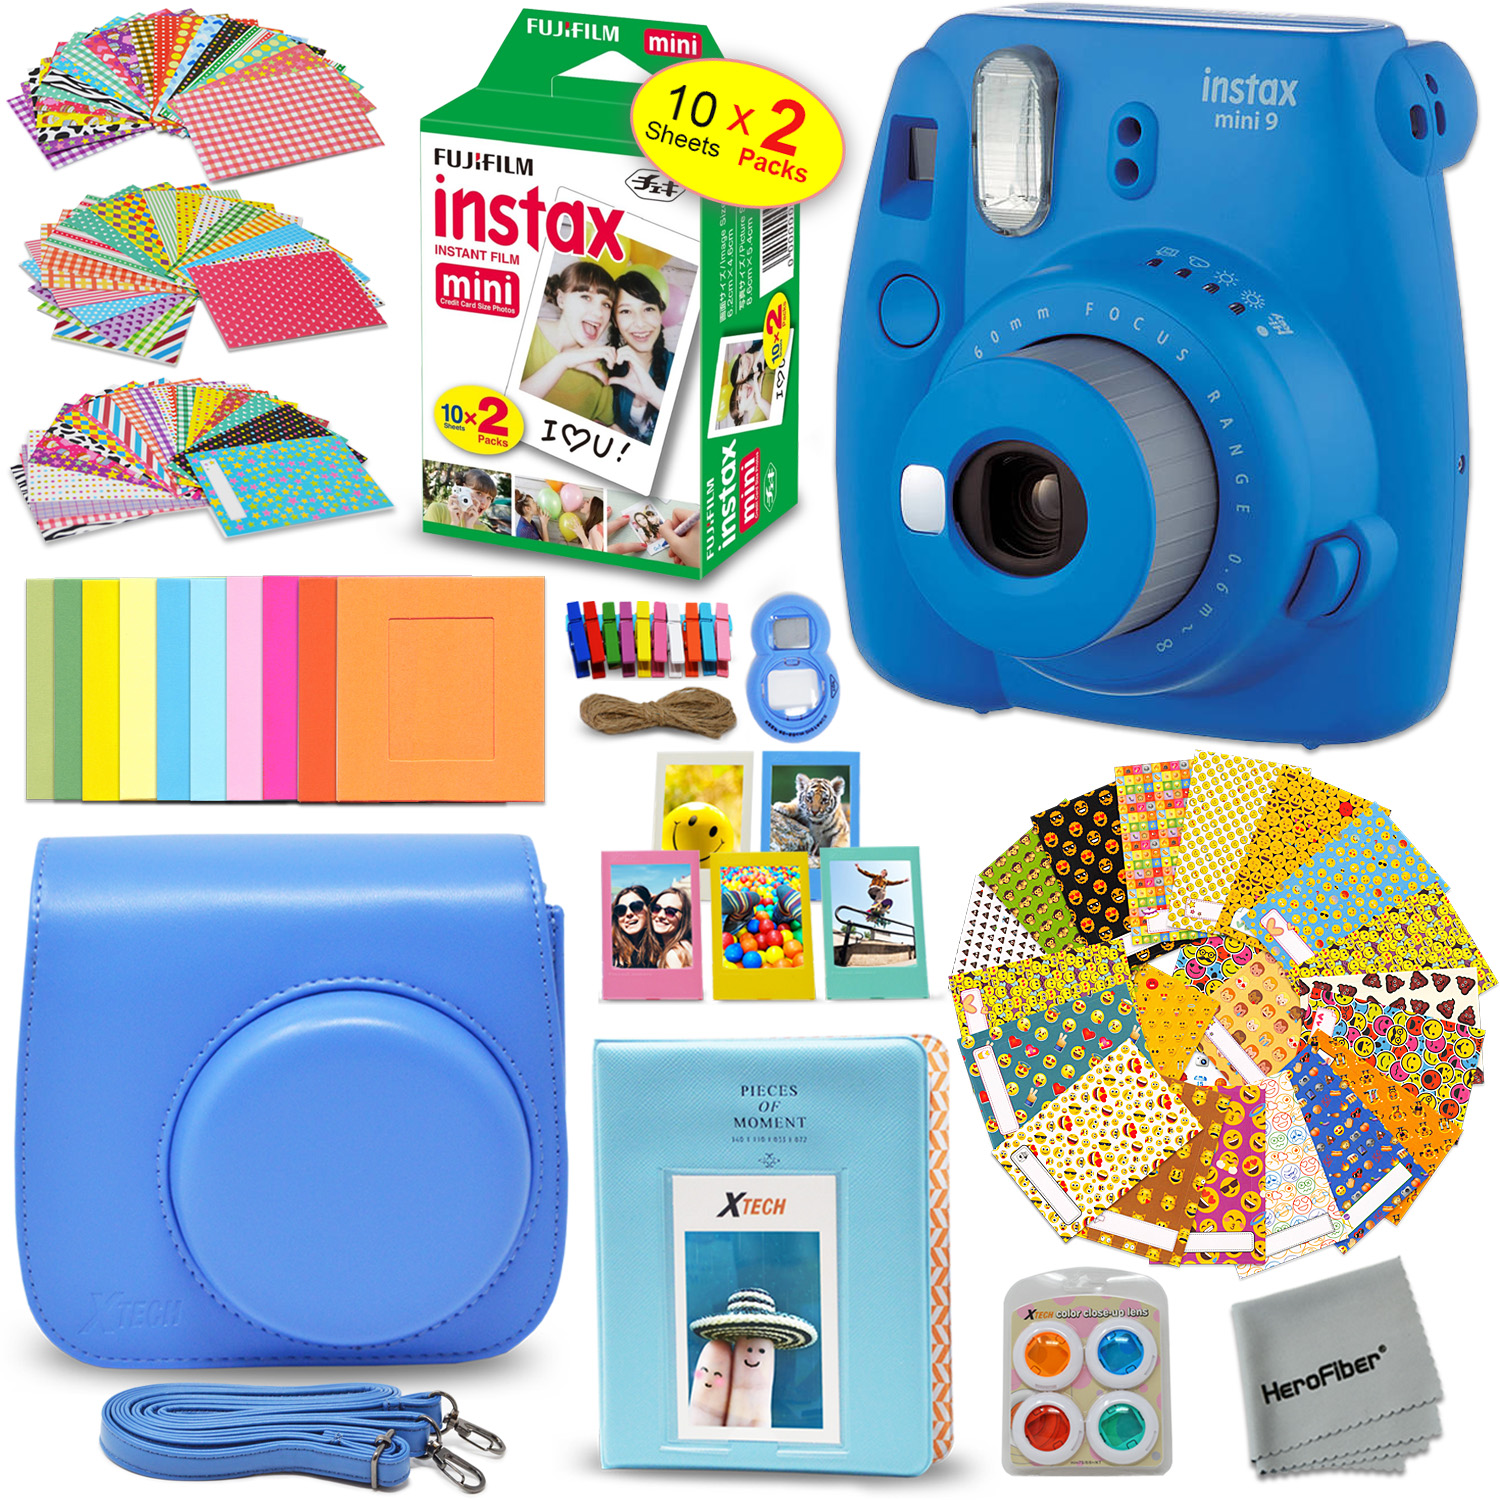 FujiFilm Instax Mini 9 Instant Camera SMOKEY WHITE + EMOJI Film stickers + Fuji INSTAX Film (20 Sheets) + Custom Fitted Case + Instax Album + Colorful Stickers + Fun Frames + 4 Colored Filters + MORE